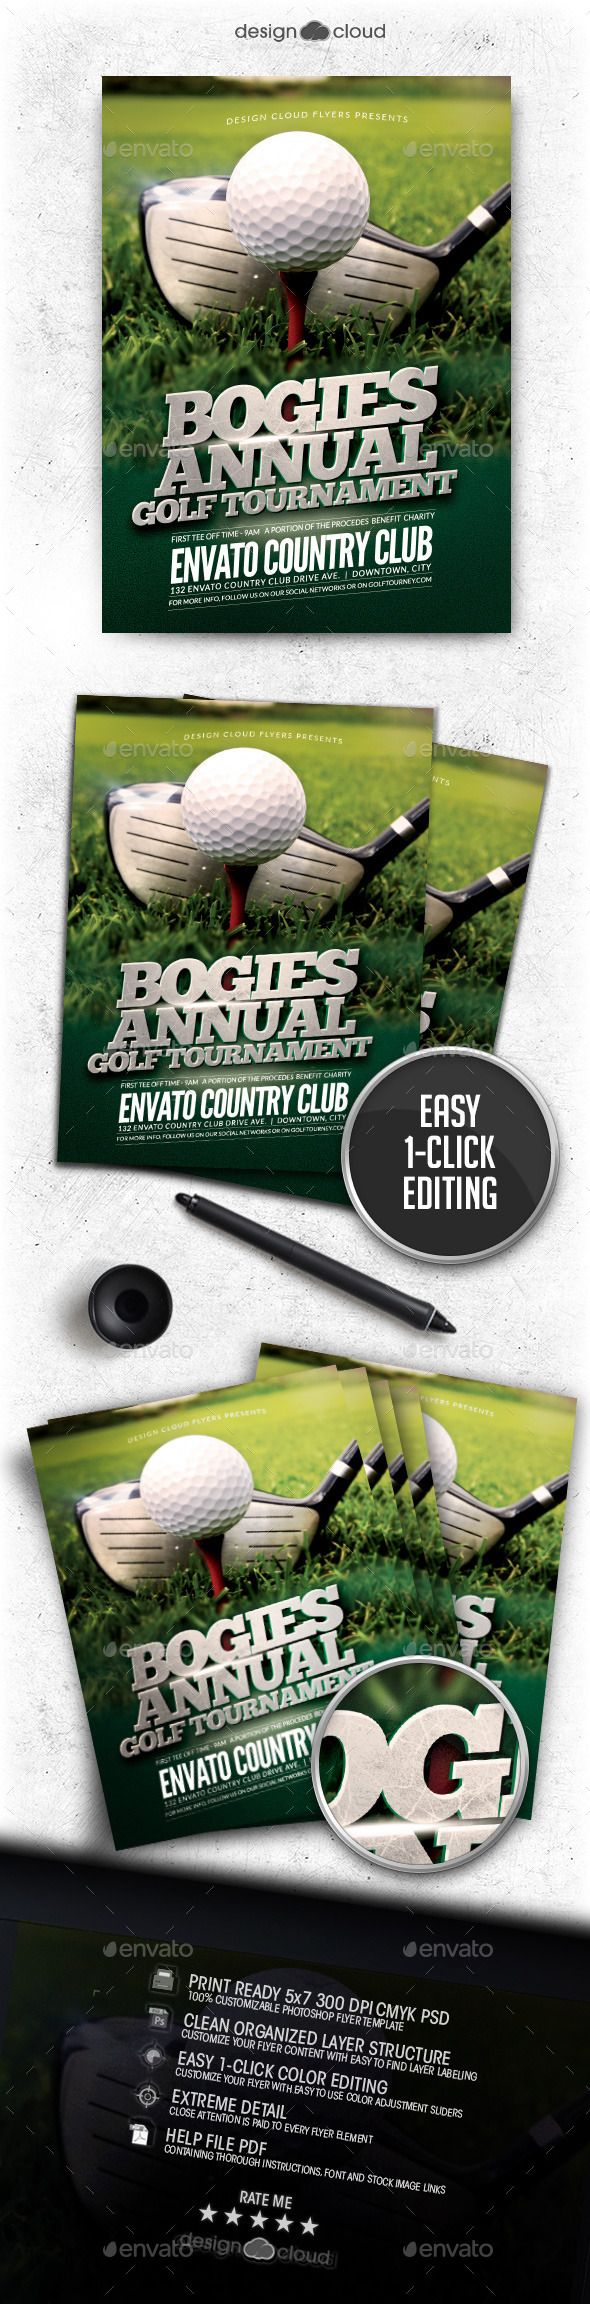 8 best Golf Poster Ideas images on Pinterest | Golf outing, Golf ...